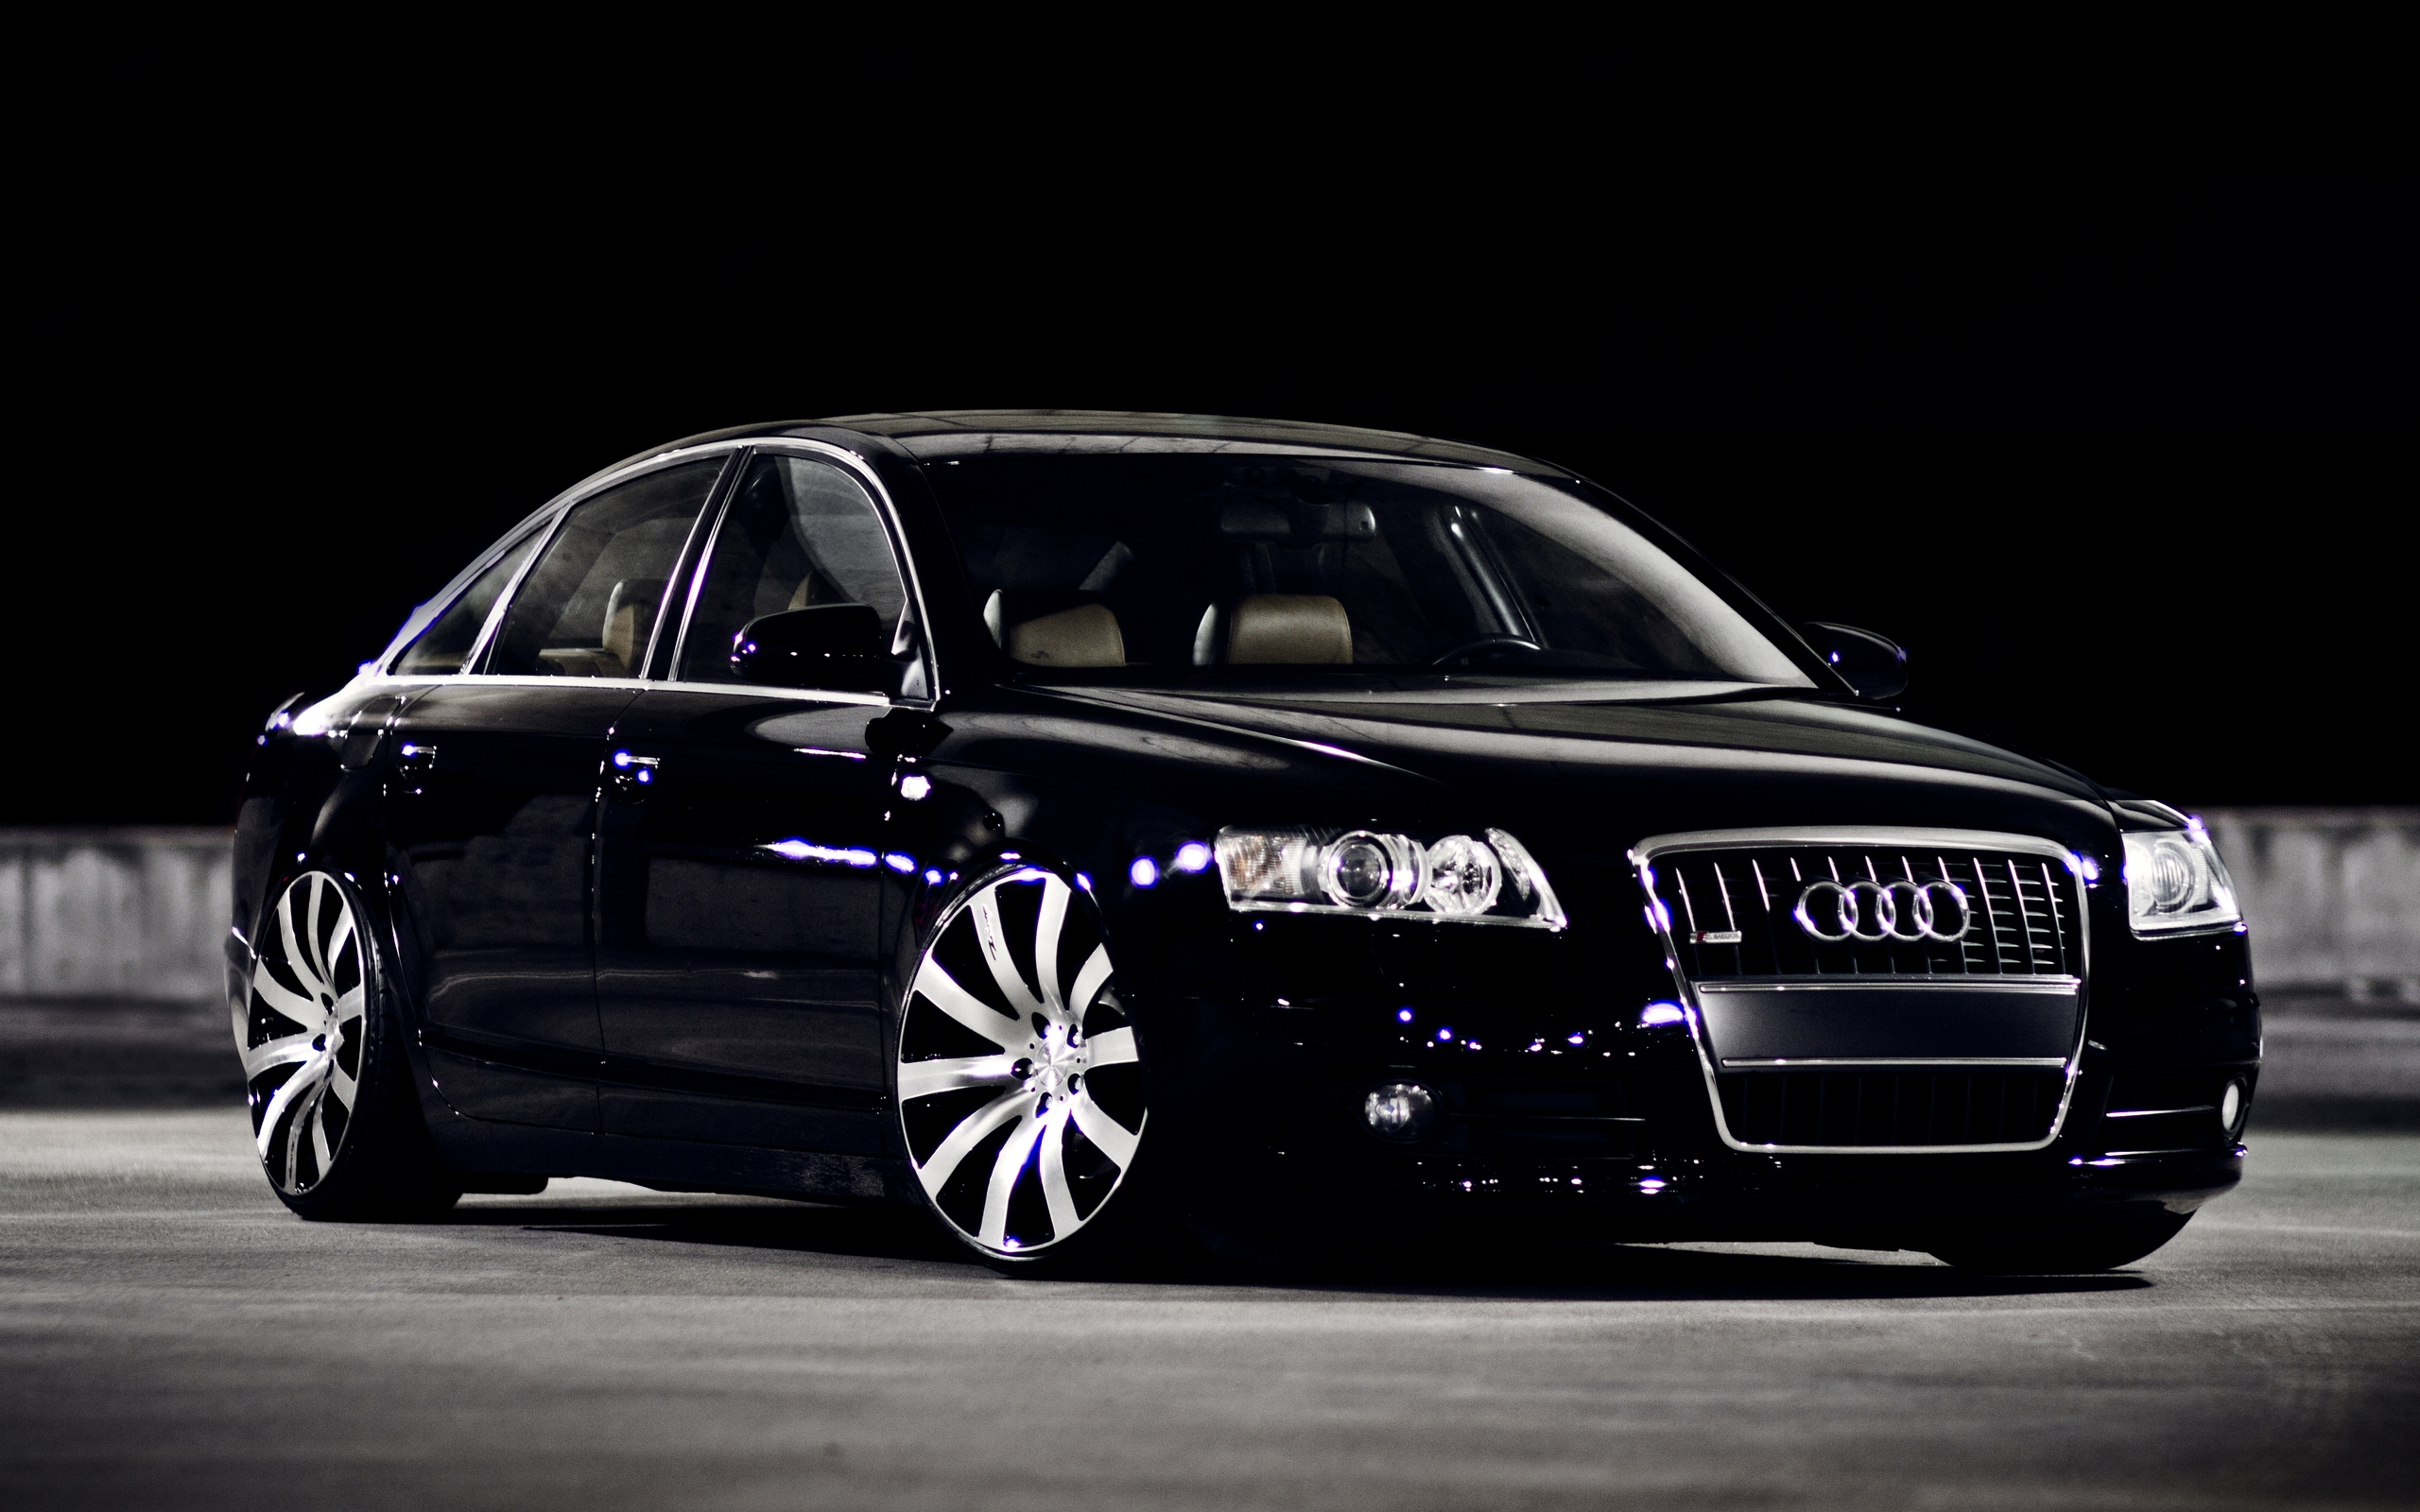 Audi Cars Wallpaper PC